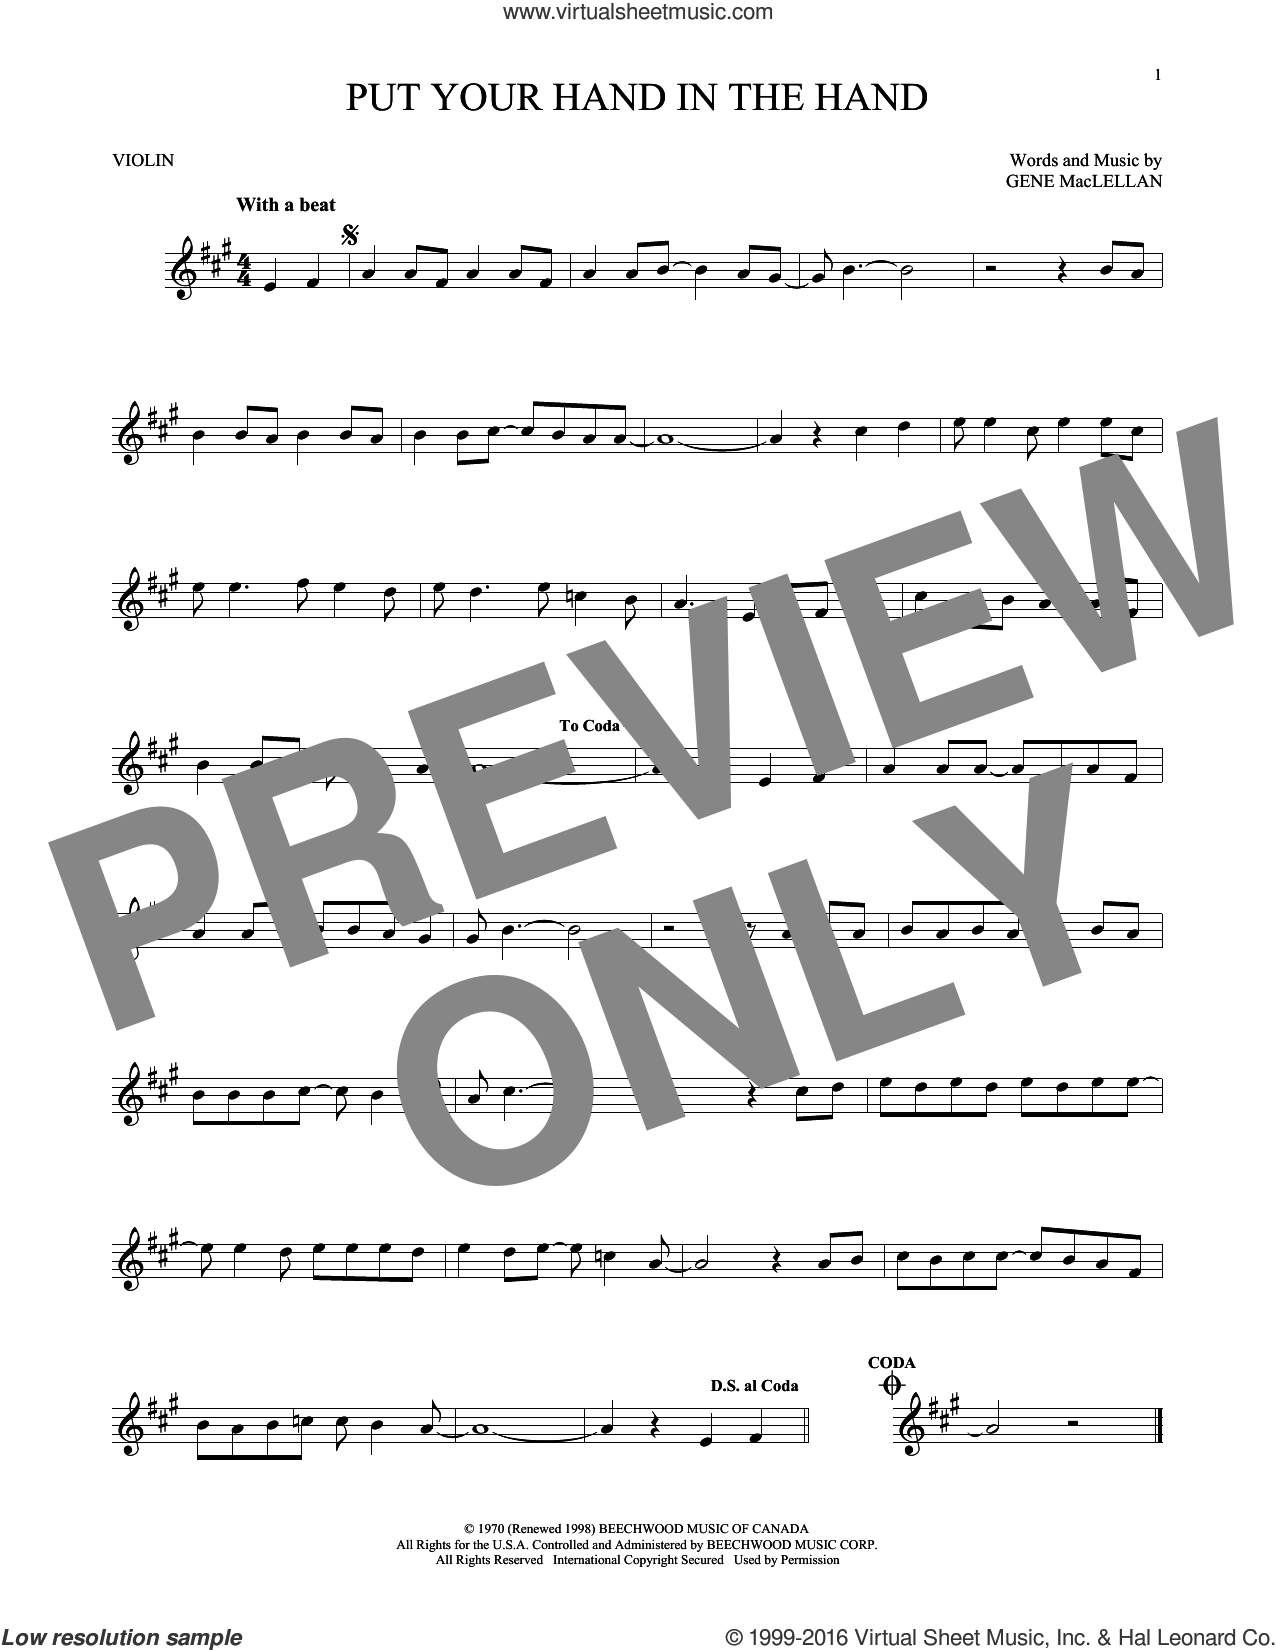 Put Your Hand In The Hand sheet music for violin solo by Gene MacLellan. Score Image Preview.